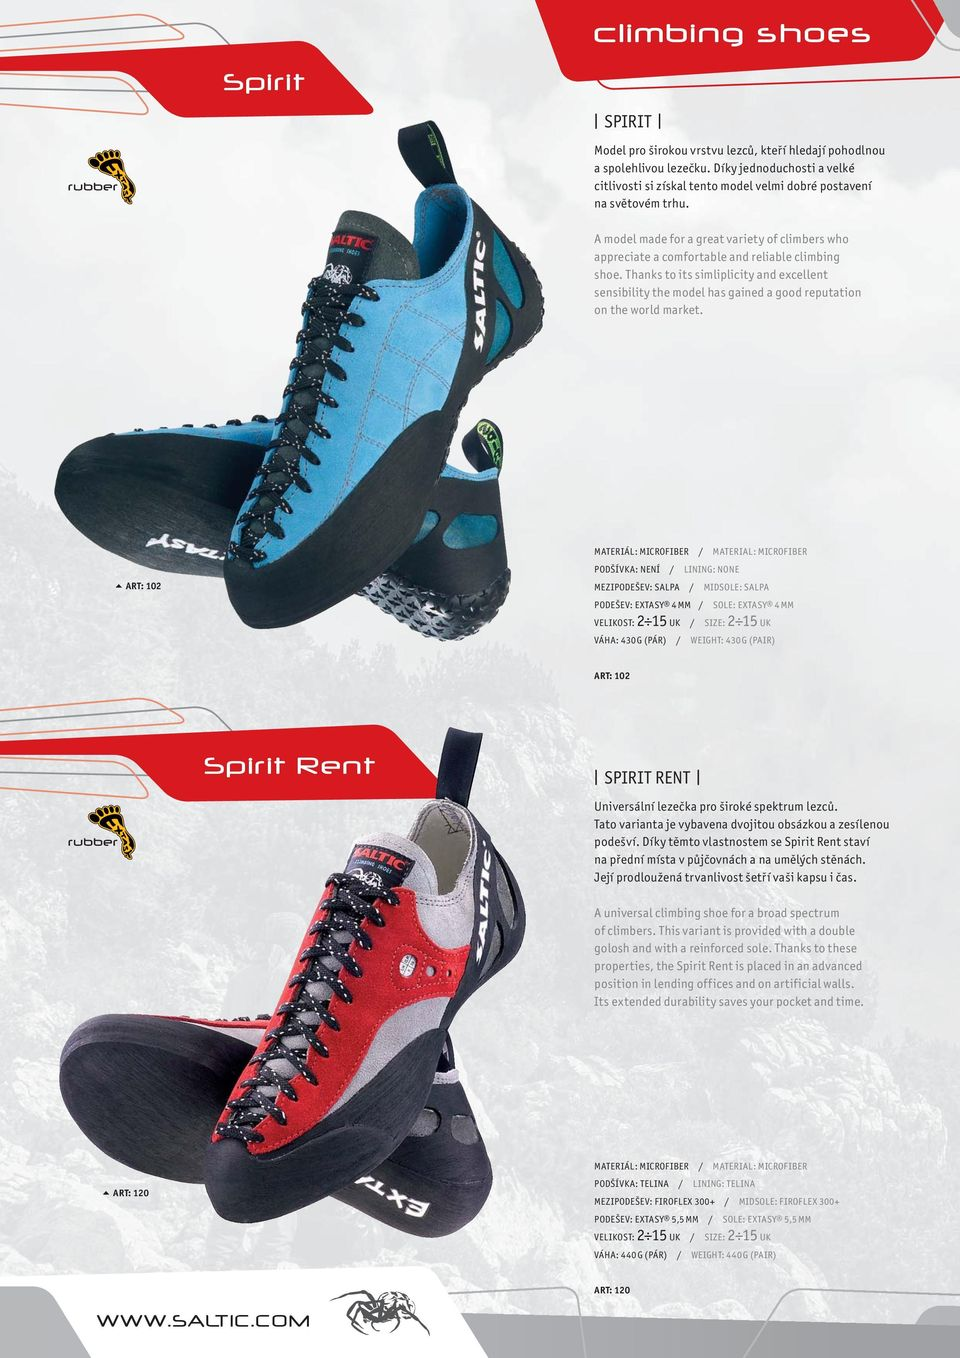 A model made for a great variety of climbers who appreciate a comfortable and reliable climbing shoe.